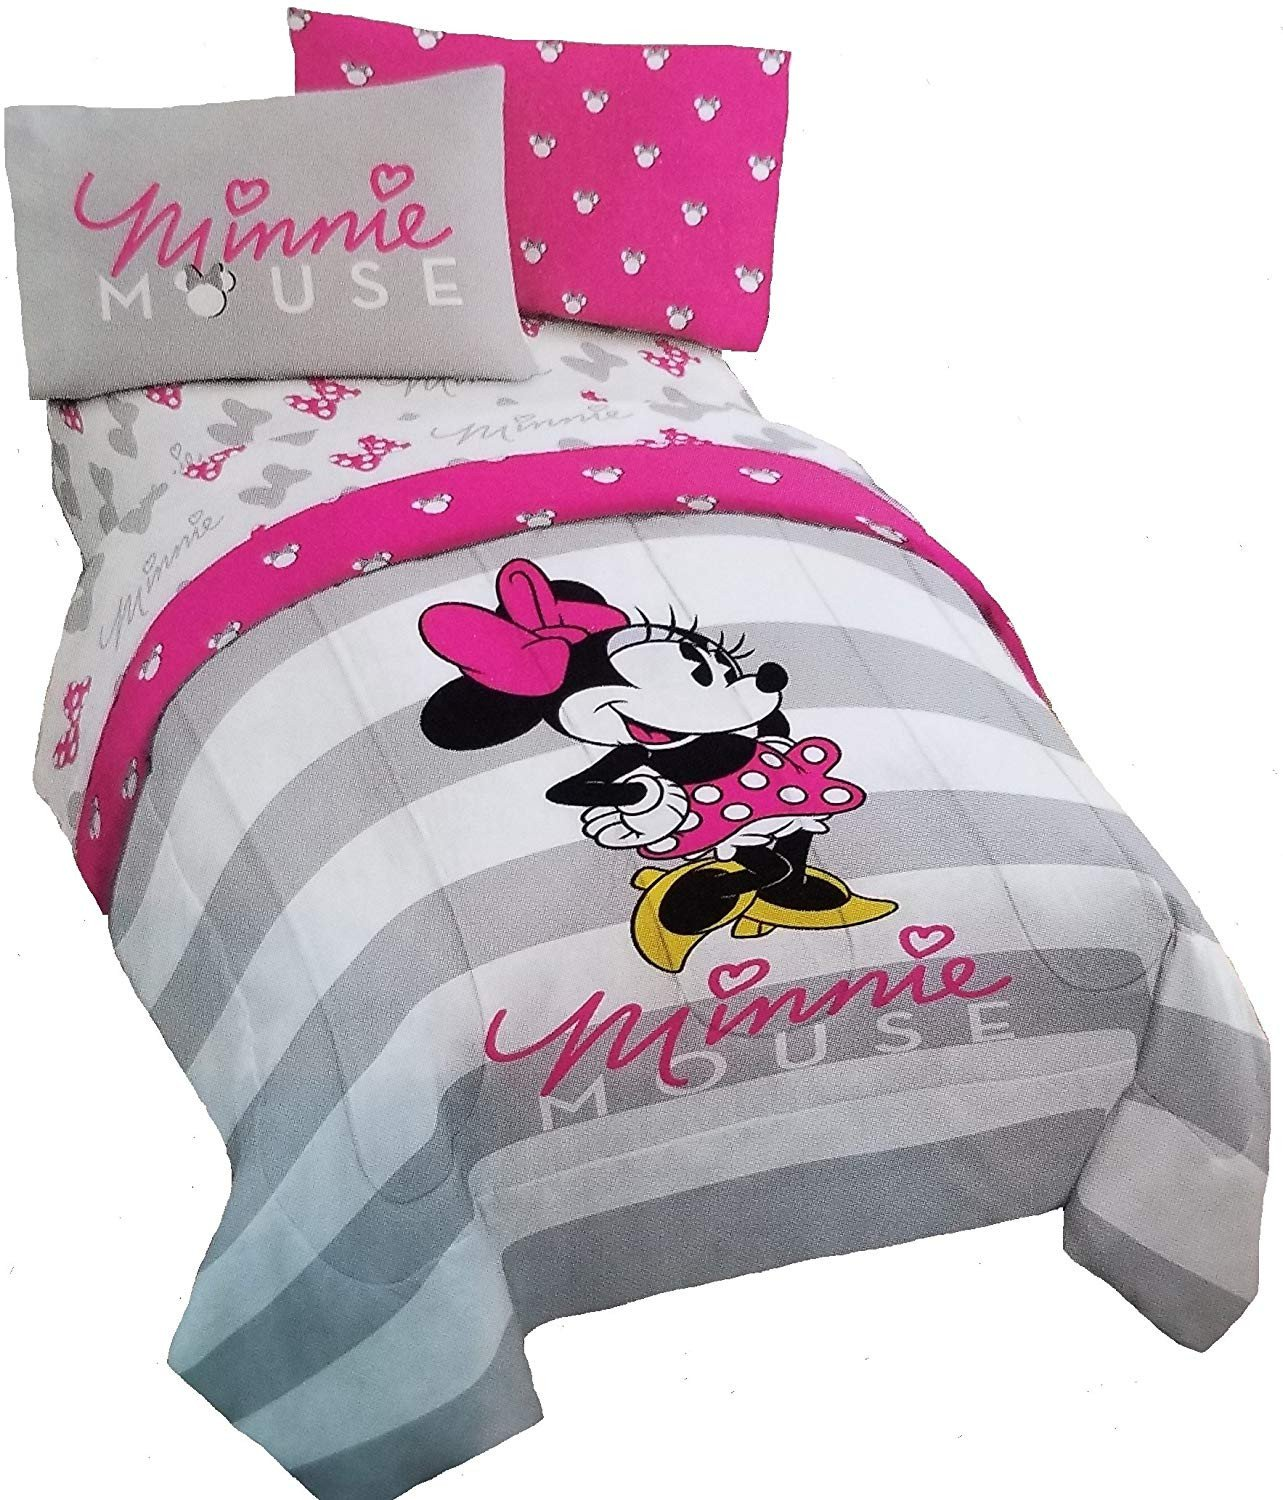 Minnie Mouse Bedroom Set Best Of Disney Minnie Mouse 4pc Pink & Gray Reversible Twin forter and Sheet Set